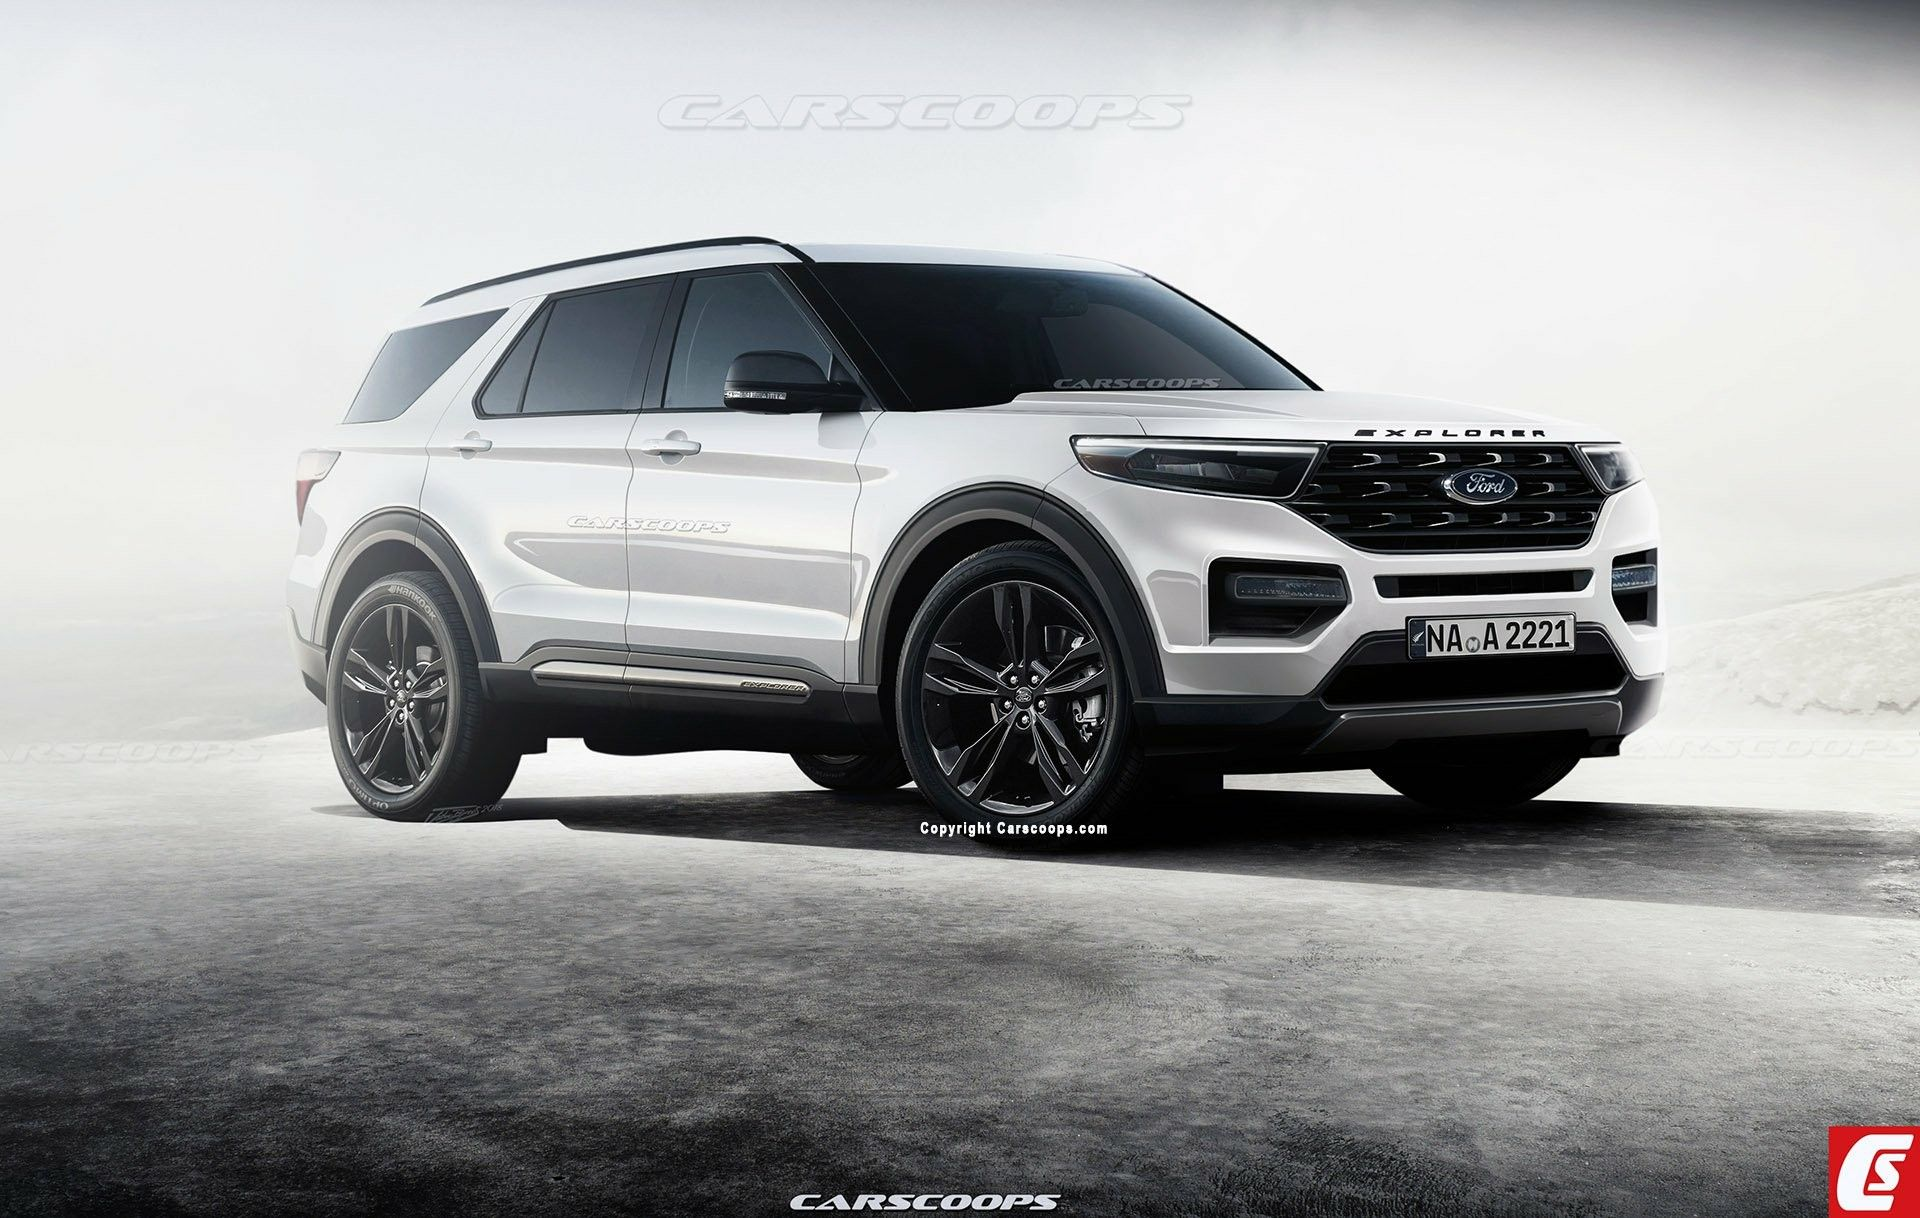 Pin by David Ha on Automotive 2020 ford explorer, Ford